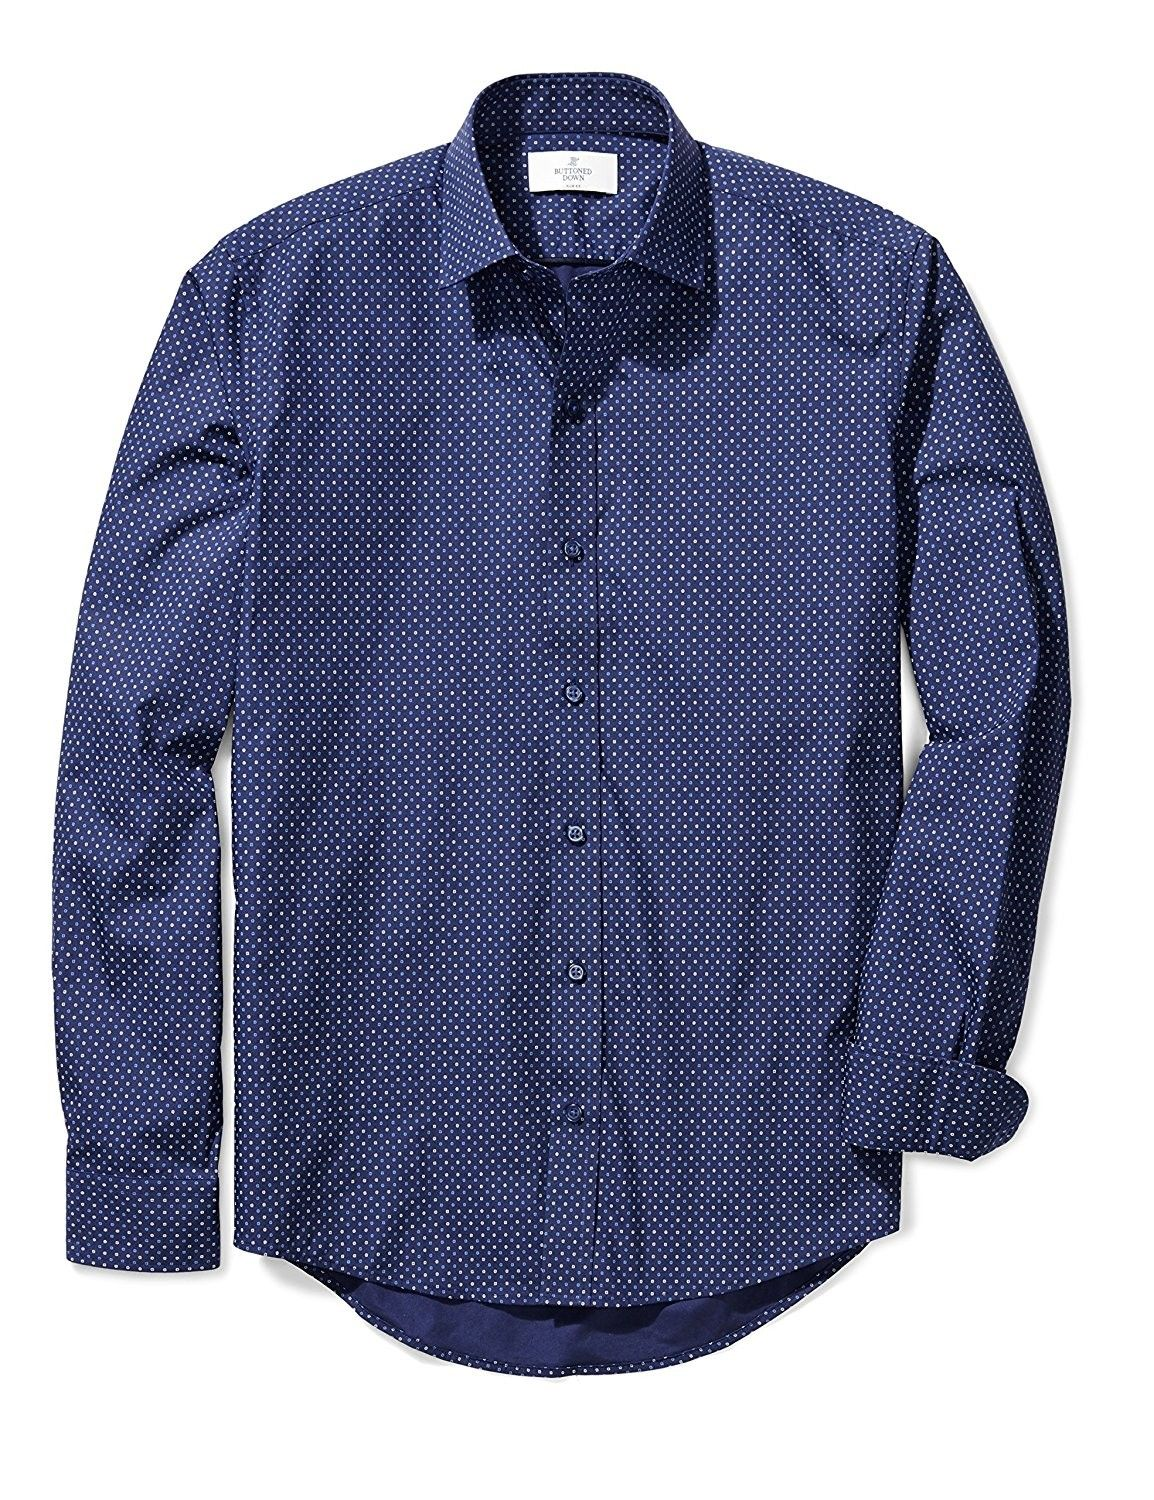 Mens Slim Fit Spread Collar Sport Shirt Without Pocket Navyblue